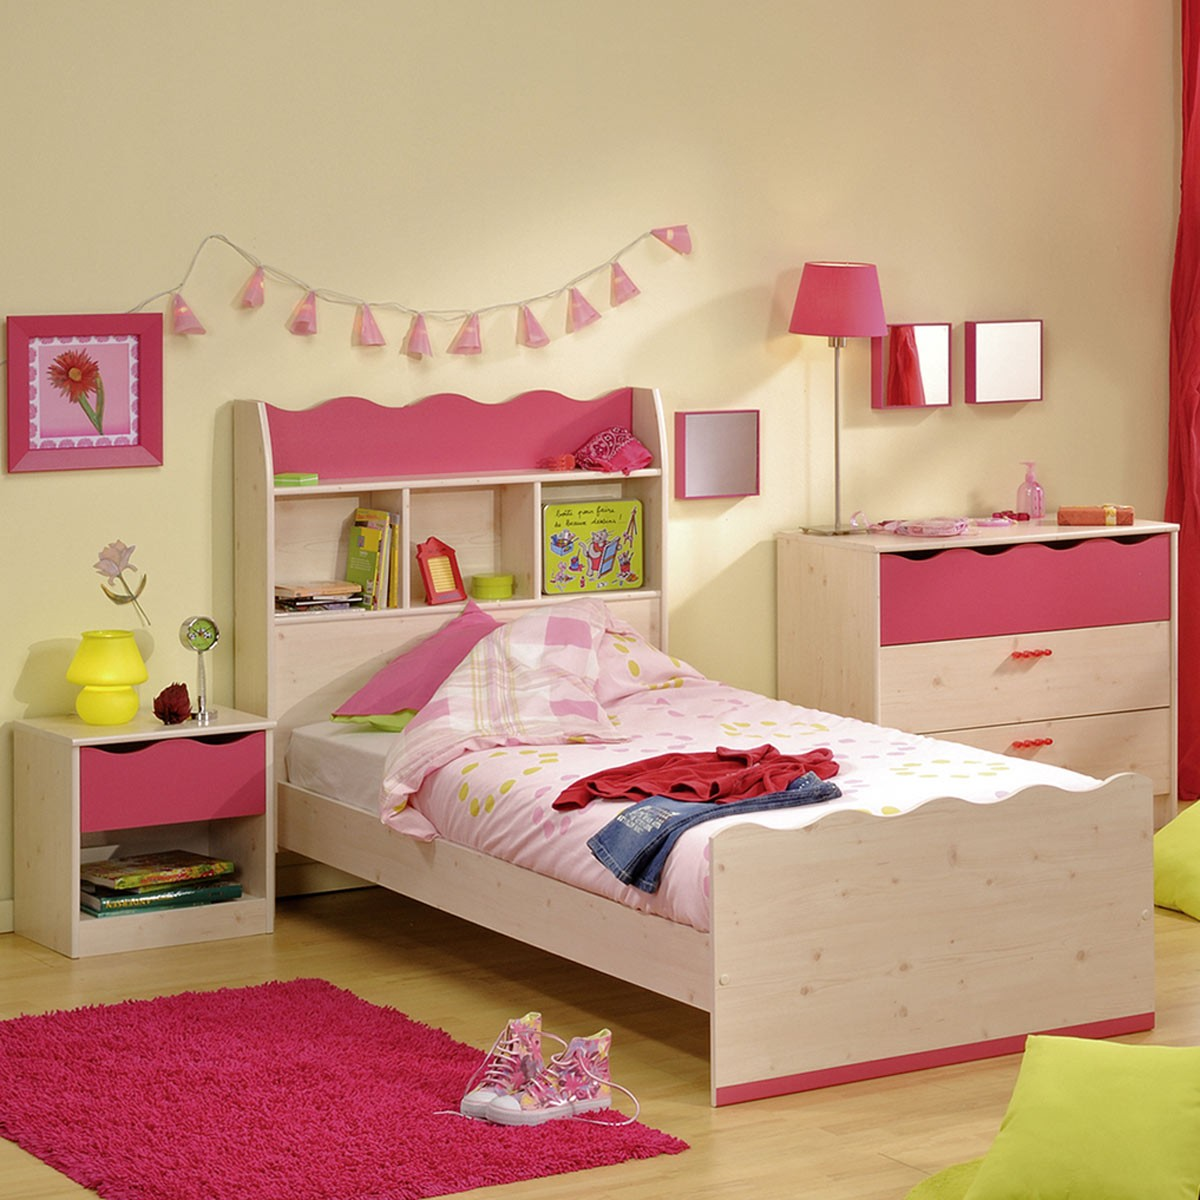 kinderbett m dchenbett bett 90x200 mit regal in kiefer. Black Bedroom Furniture Sets. Home Design Ideas